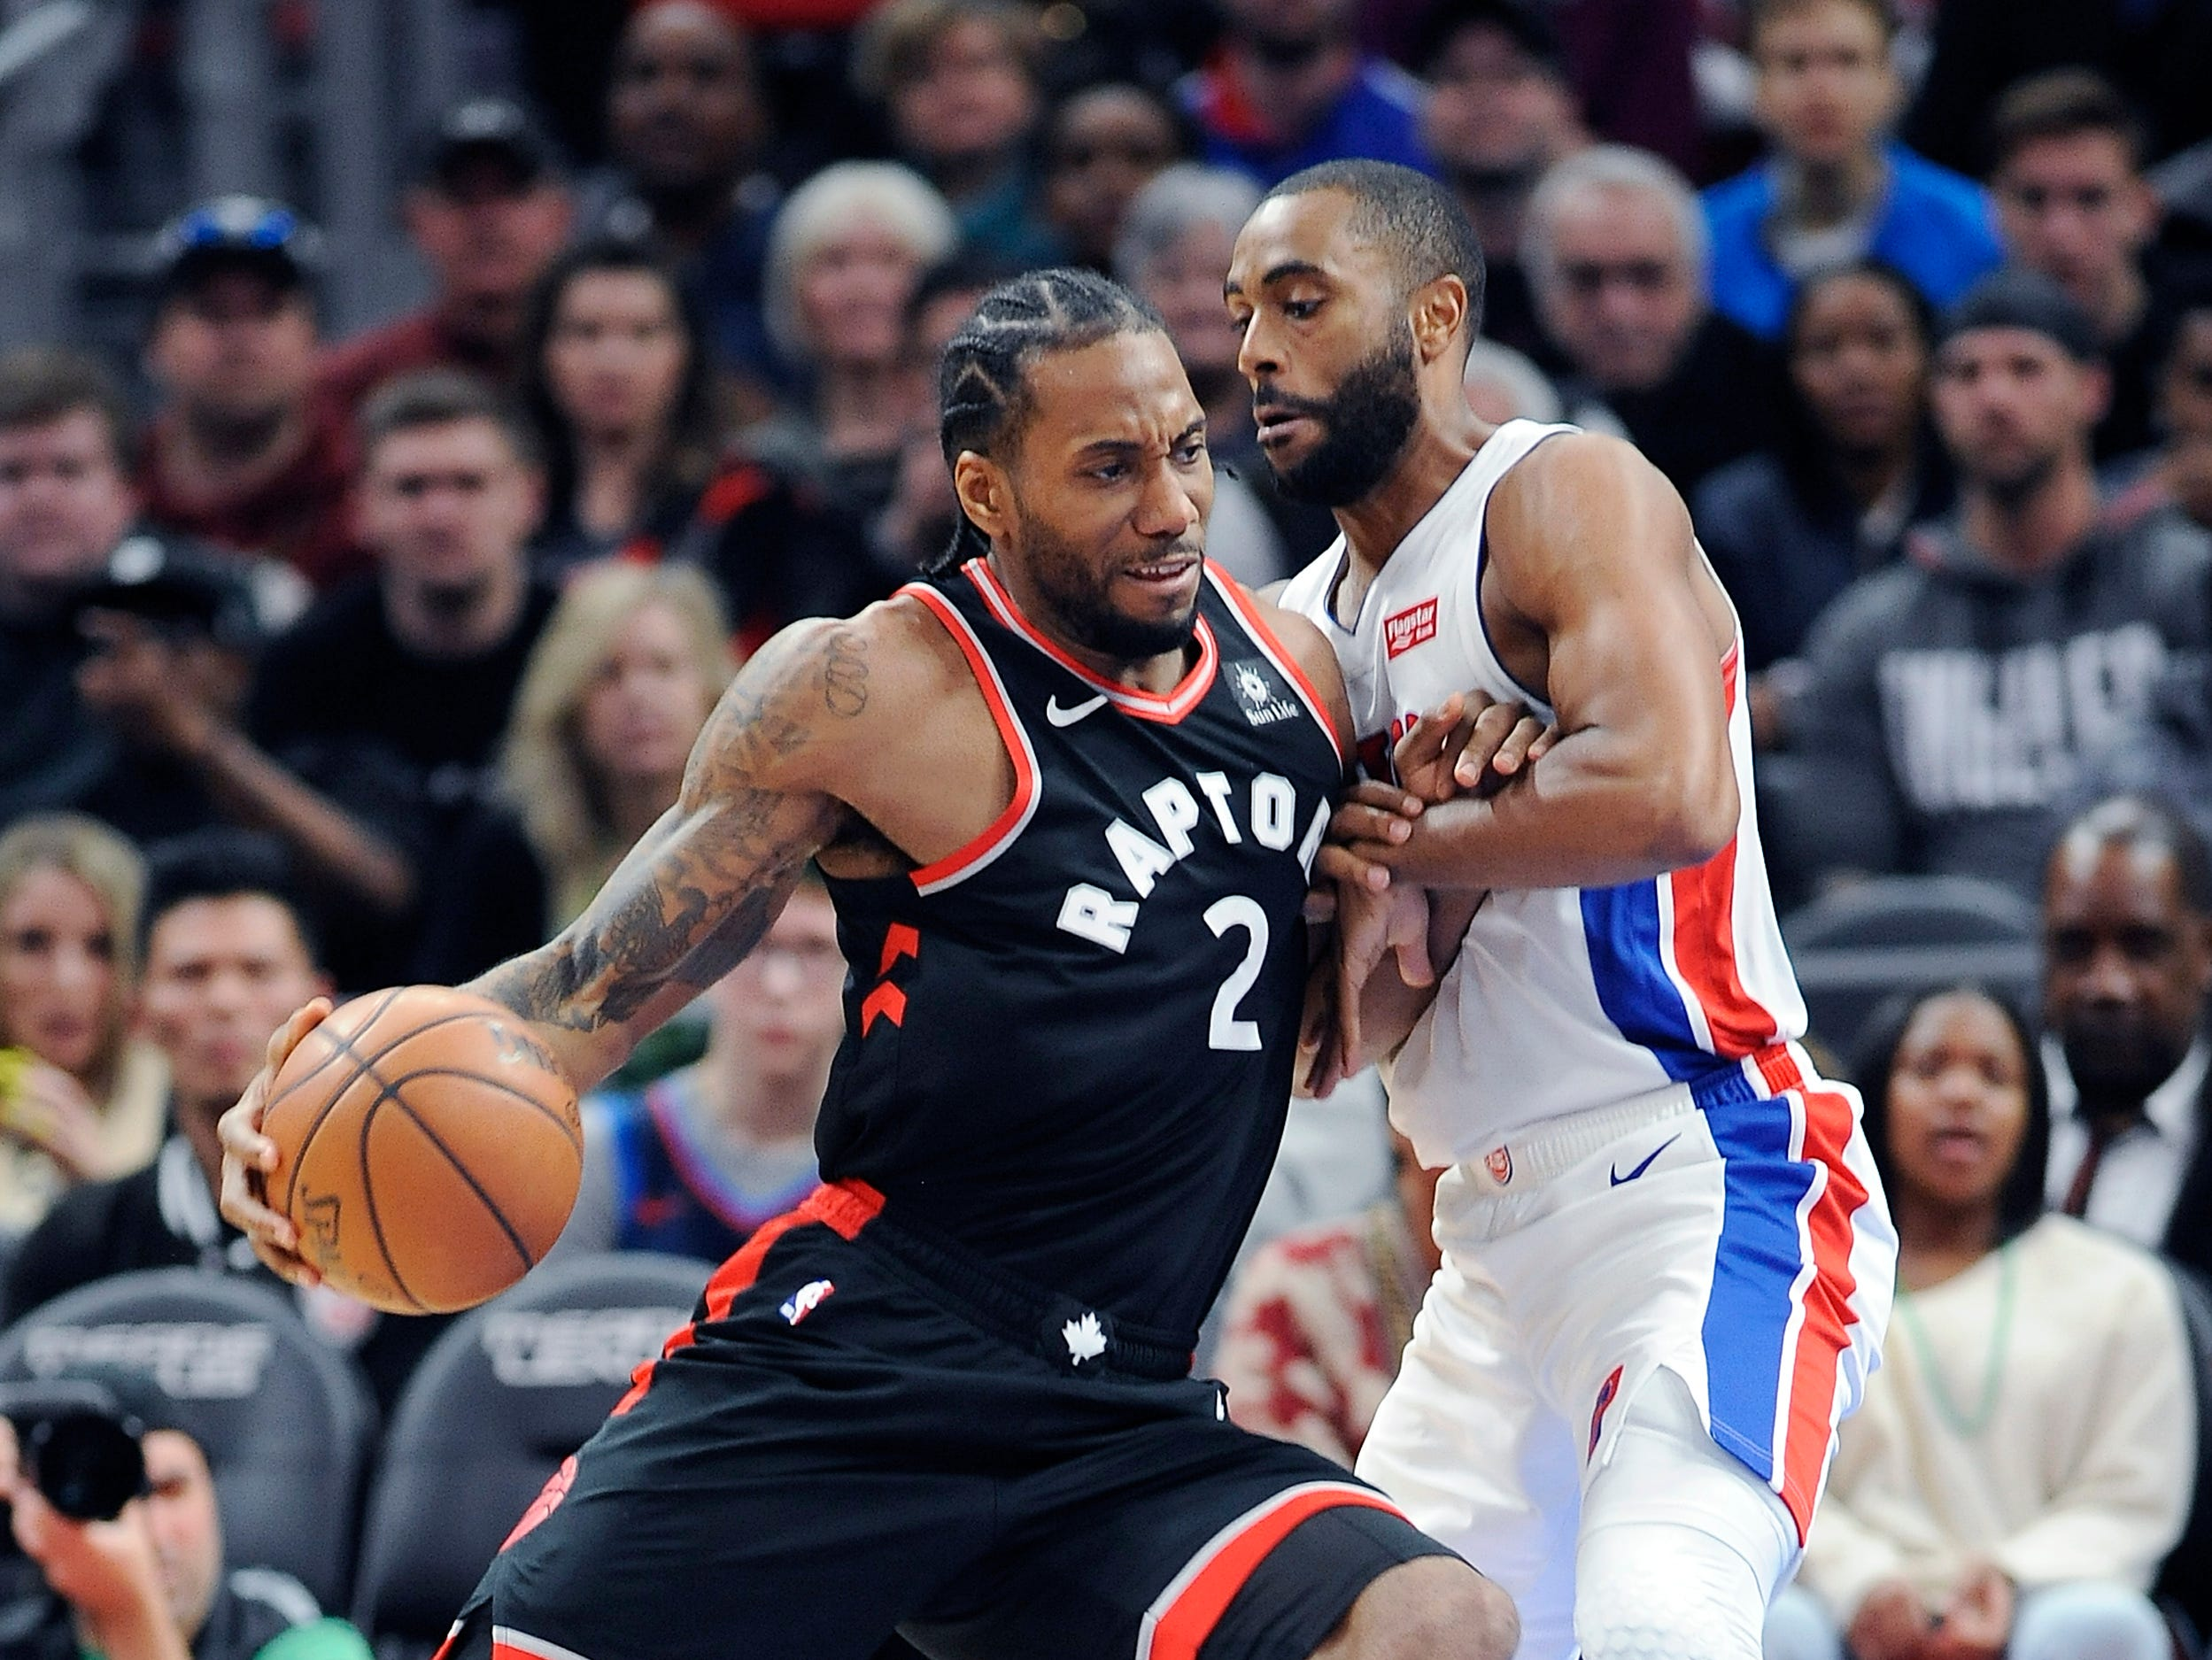 Pistons' Wayne Ellington defends Raptors' Kawhi Leonard in the third quarter.